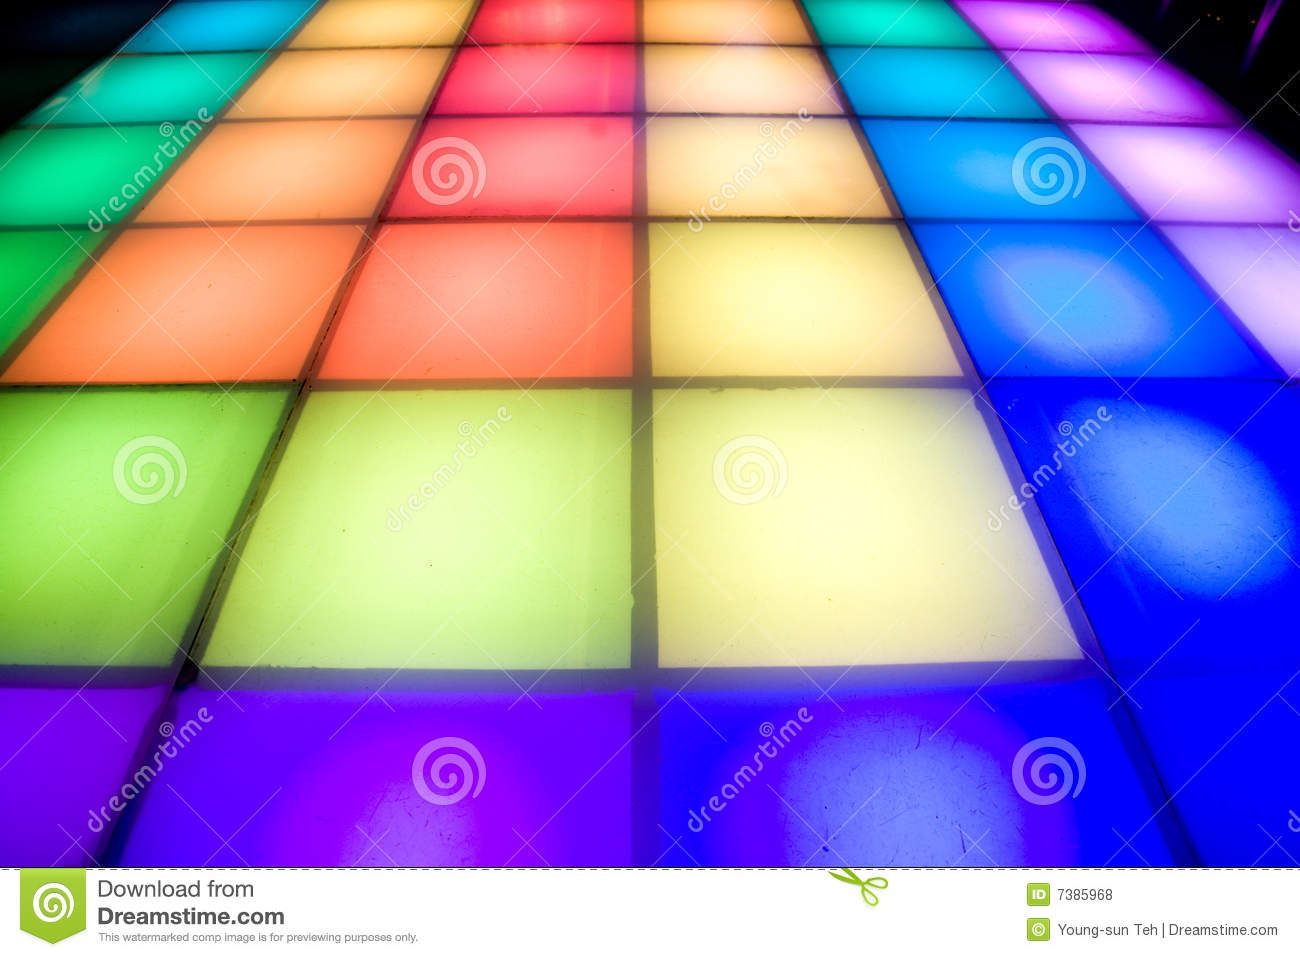 Royalty Free Stock Photos: Disco dance floor with colorful lighting